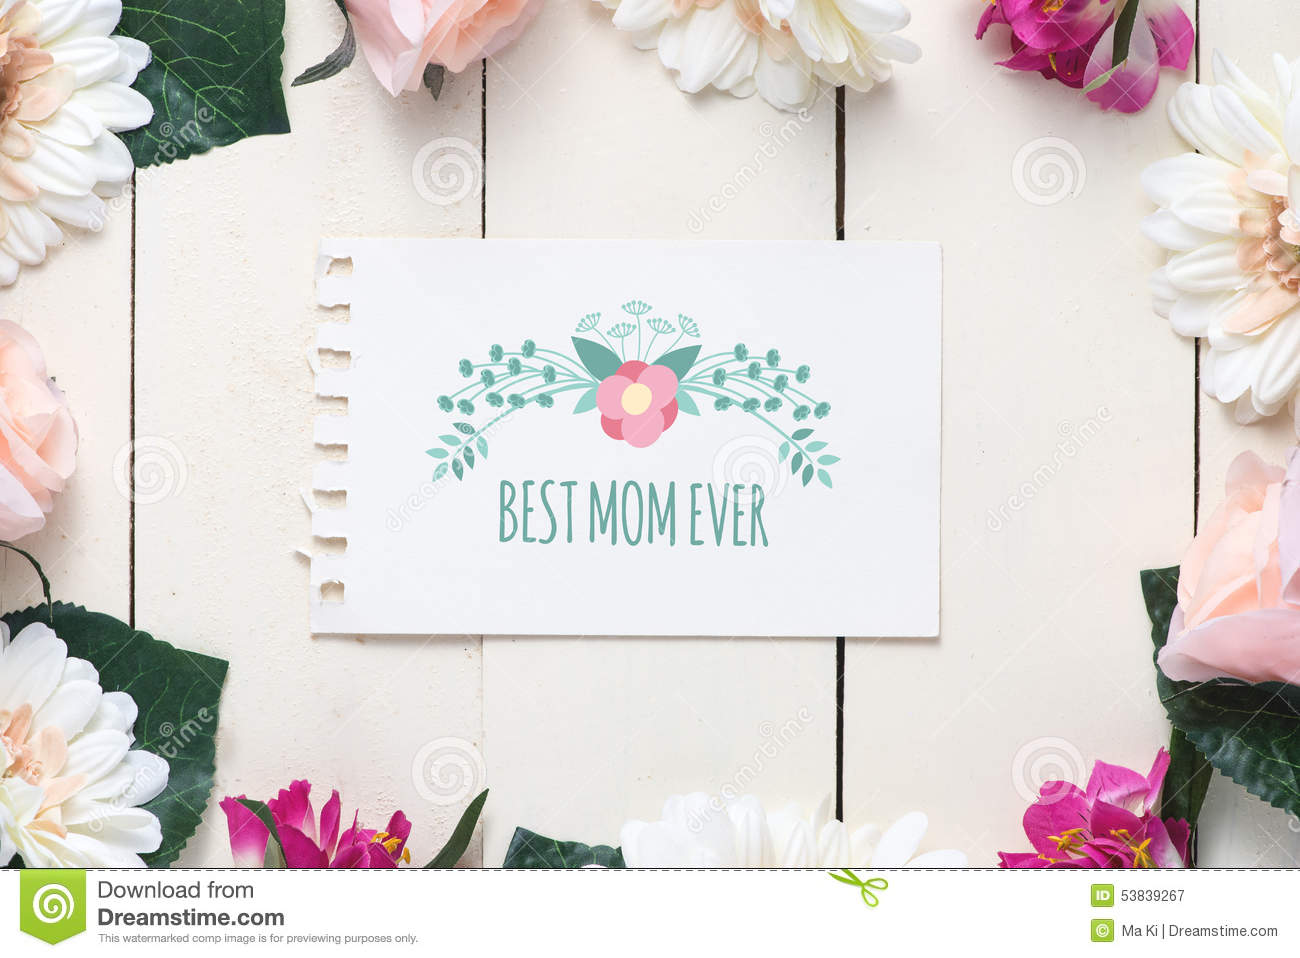 Mothers Day Card With Message Best Mom Ever Stock Image Image Of